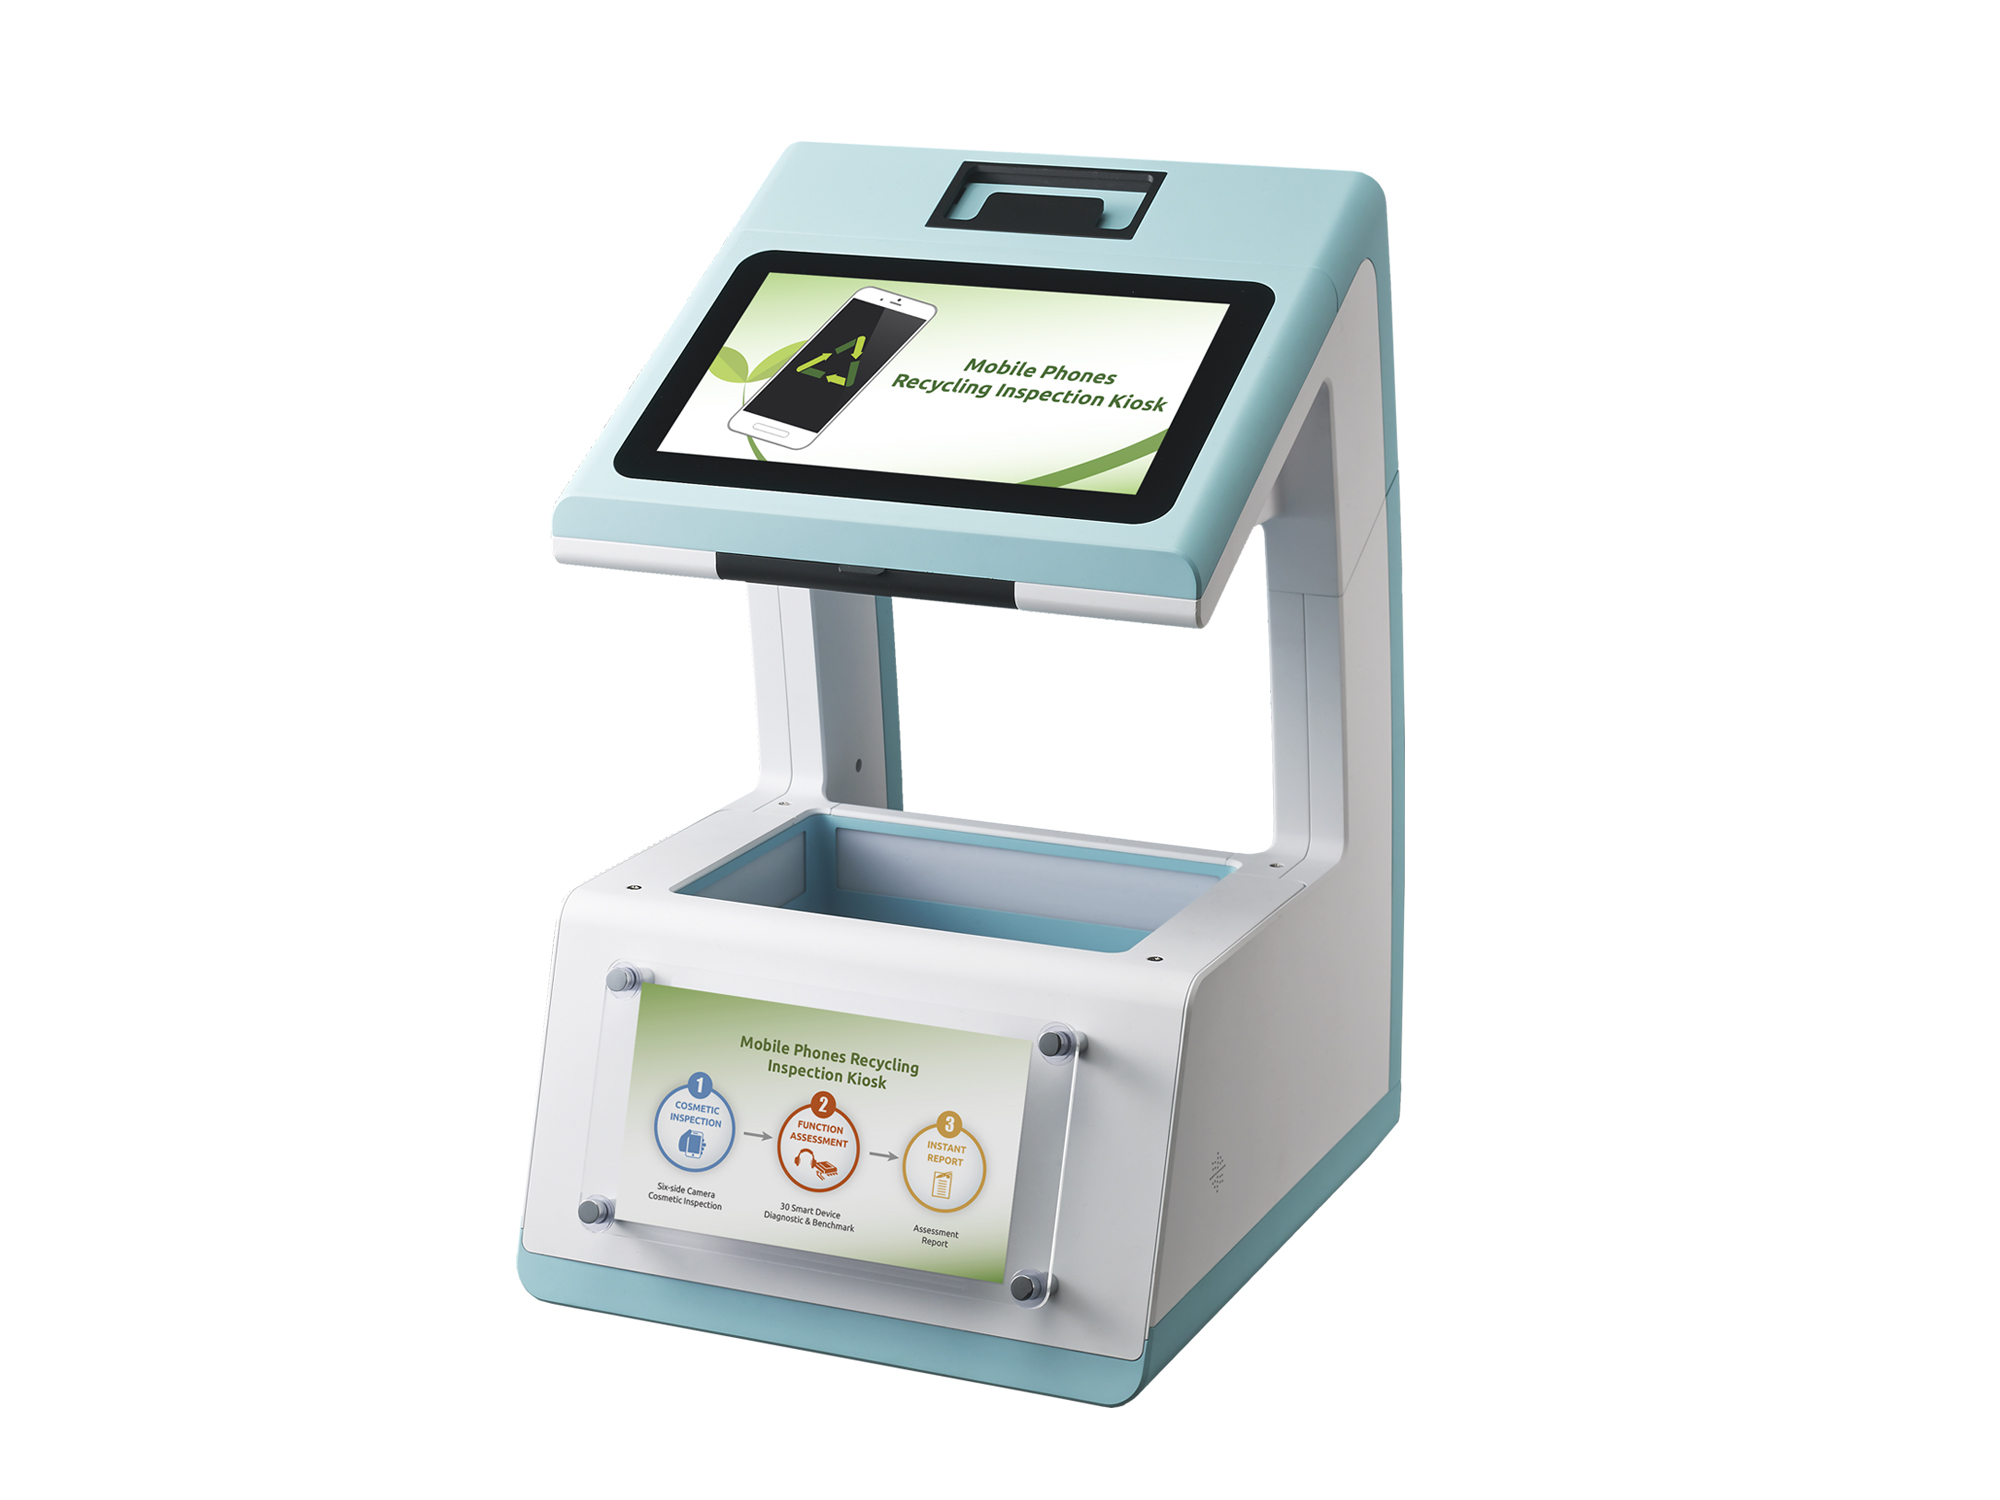 Mobile Phones Recycling Inspection Kiosk